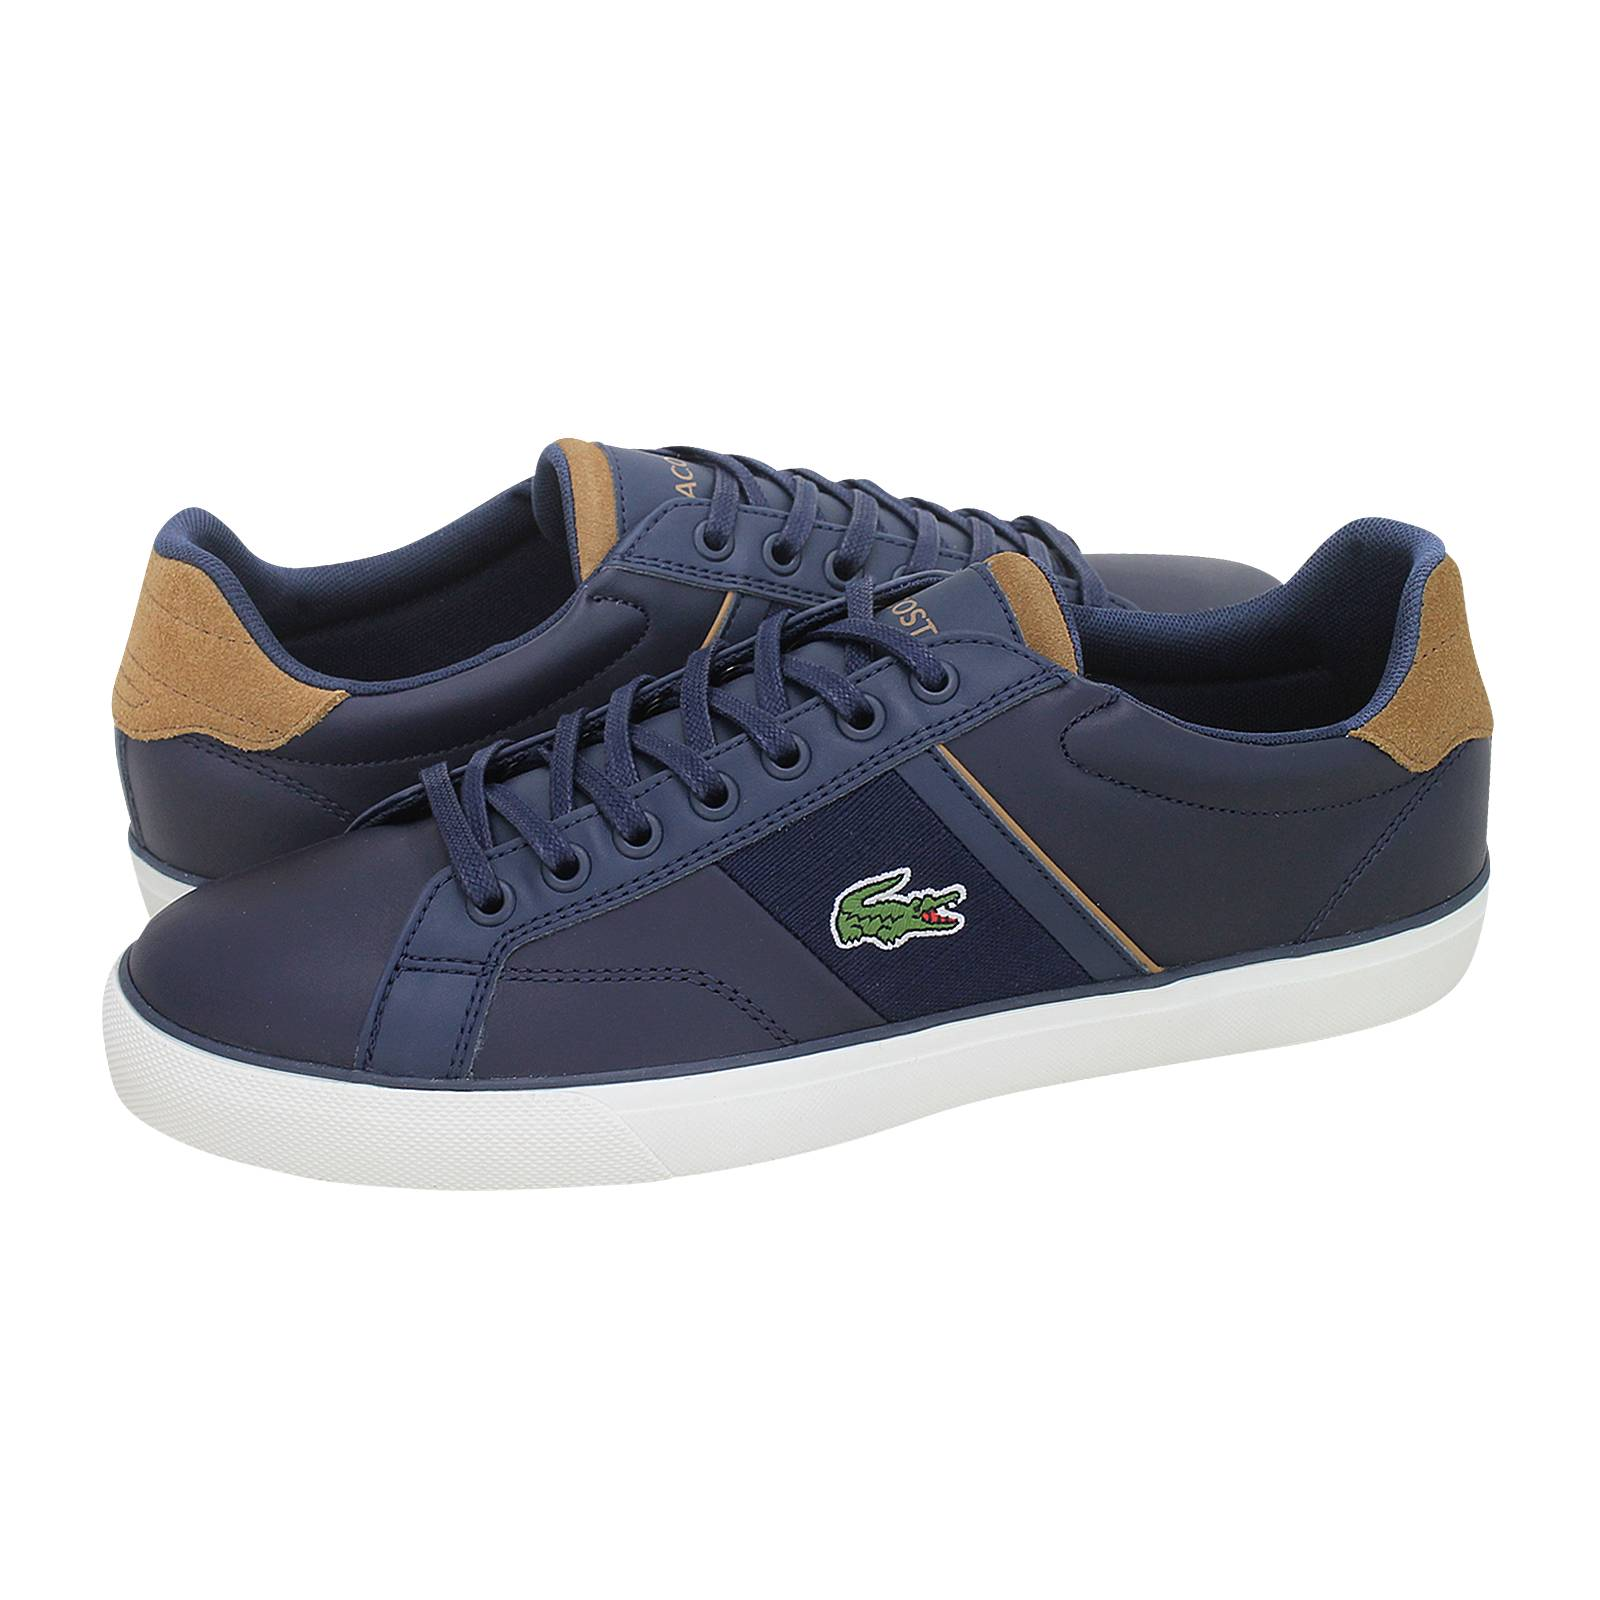 a349250c0dde Fairlead 119 1 CMA - Lacoste Men s casual shoes made of leather ...